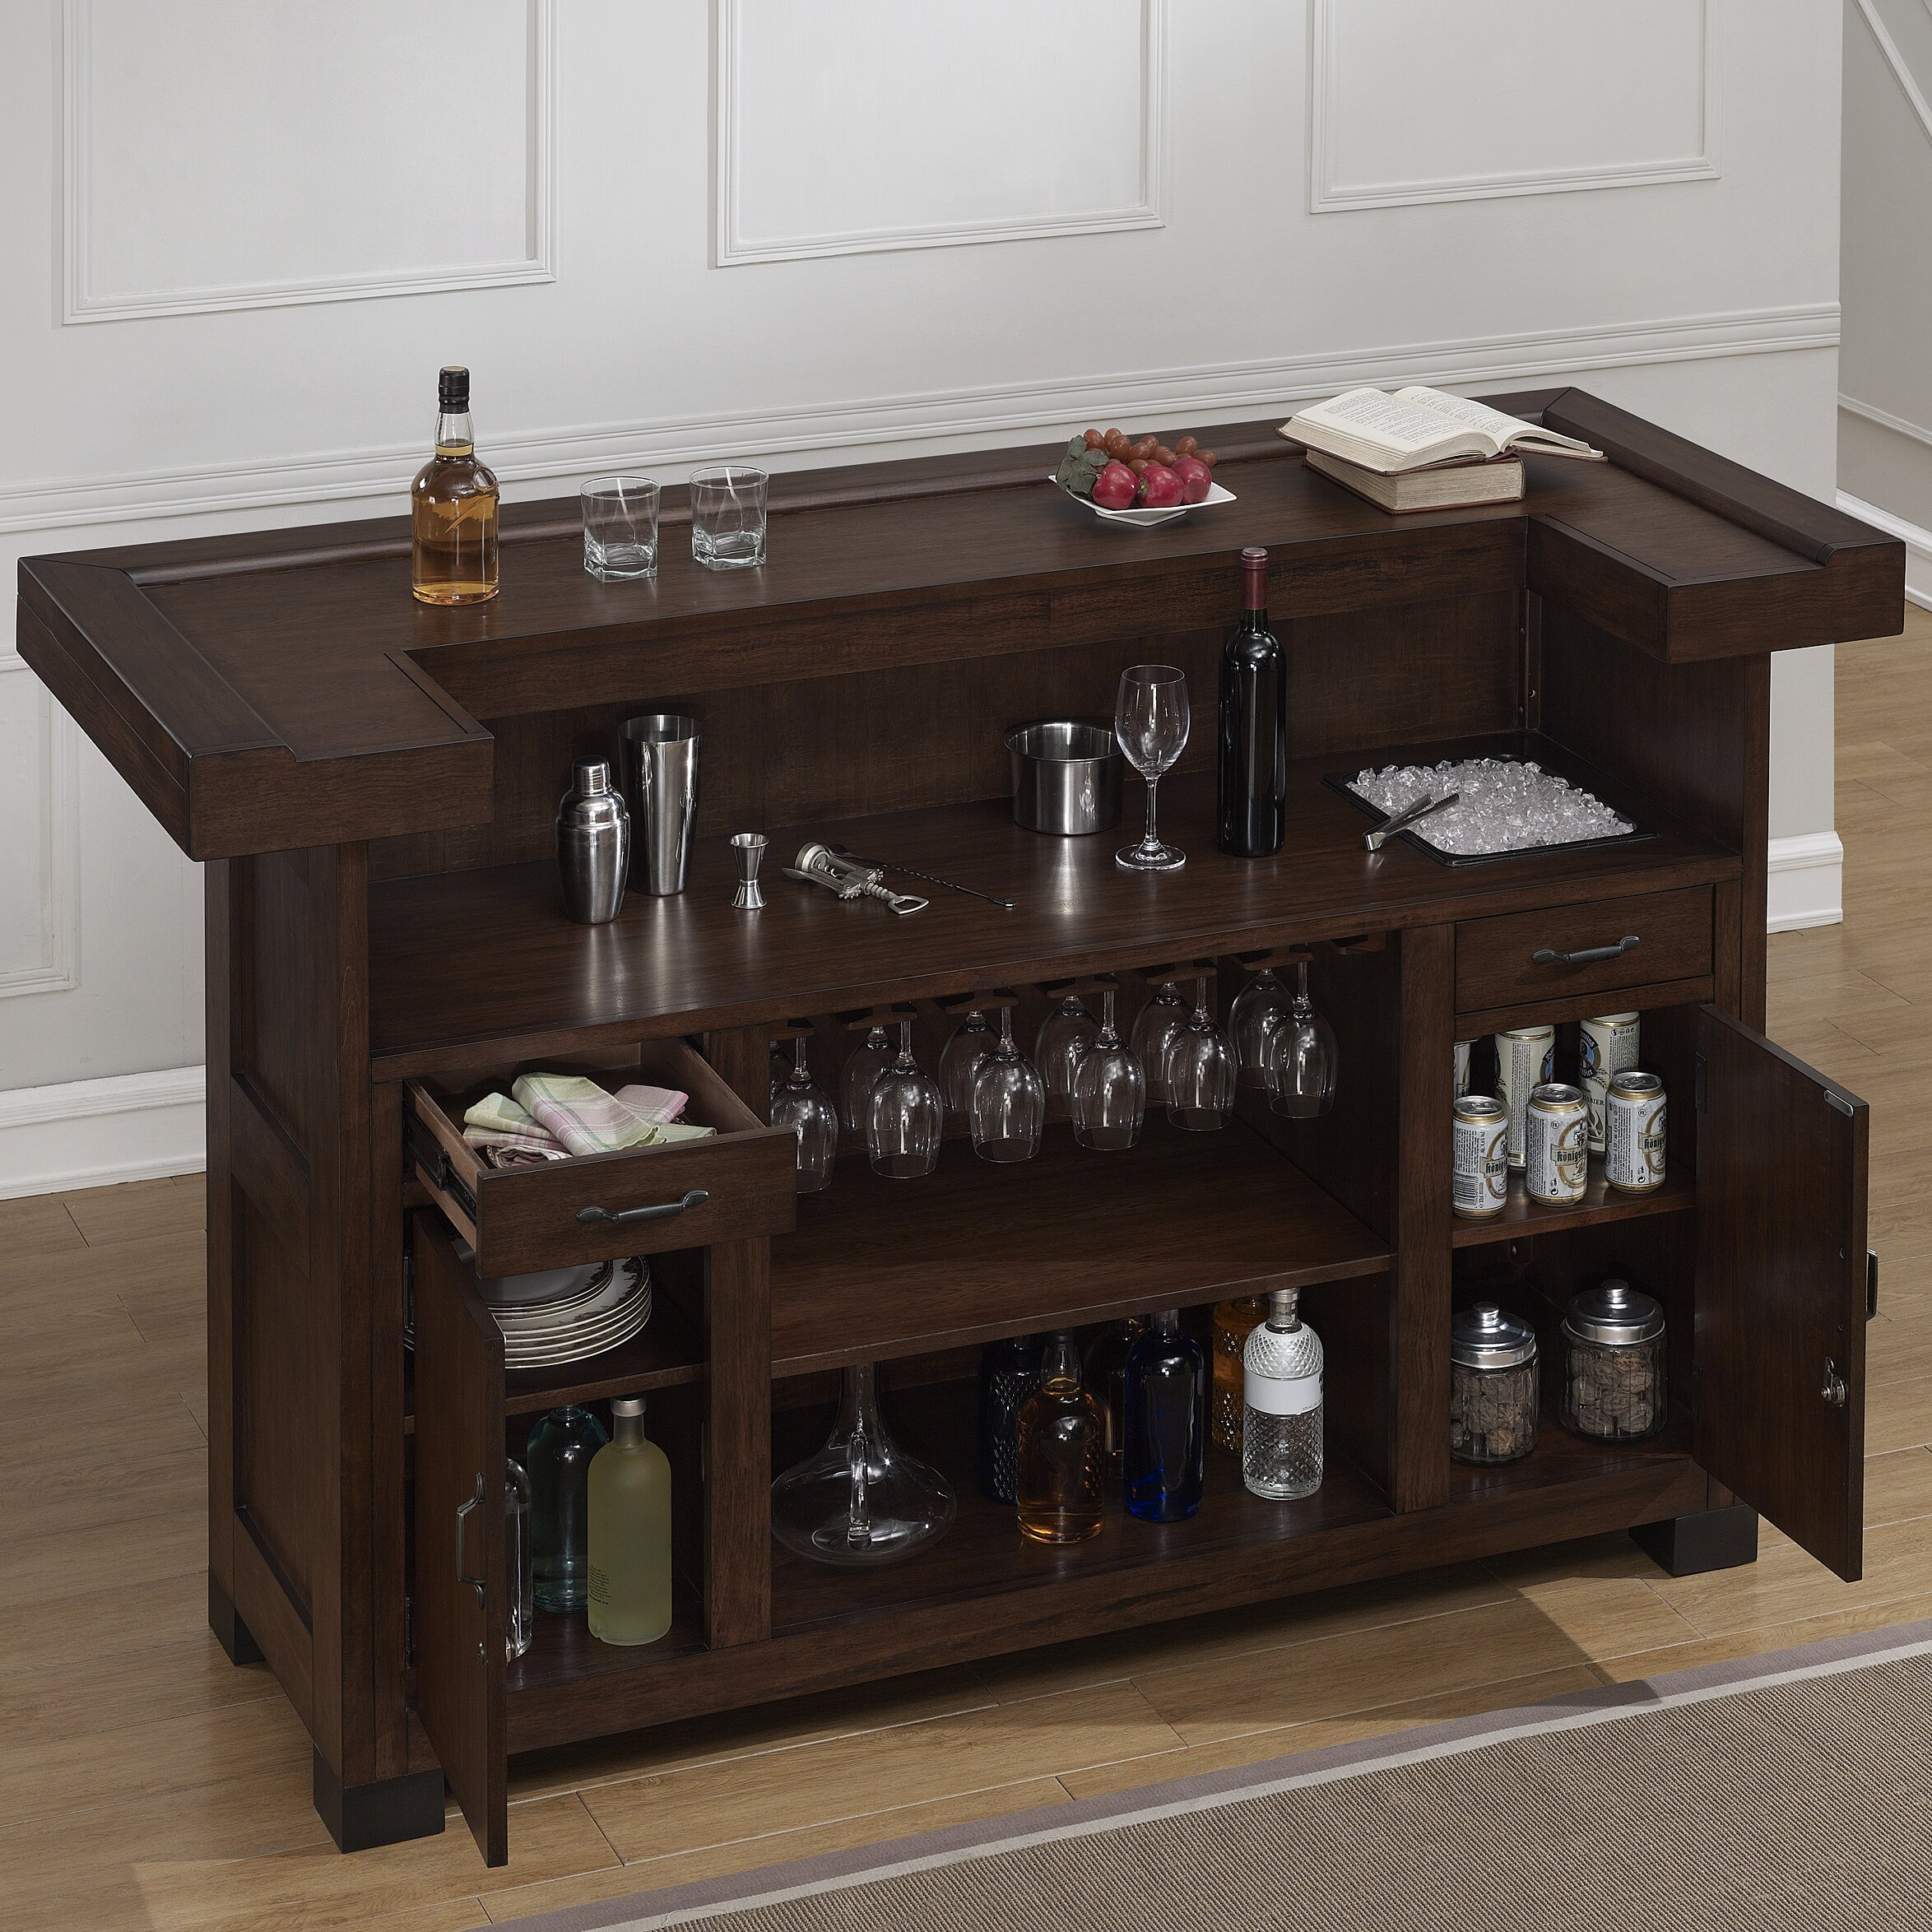 kitchen bars with storage darby home co gasper bar with wine storage amp reviews wayfair 5100